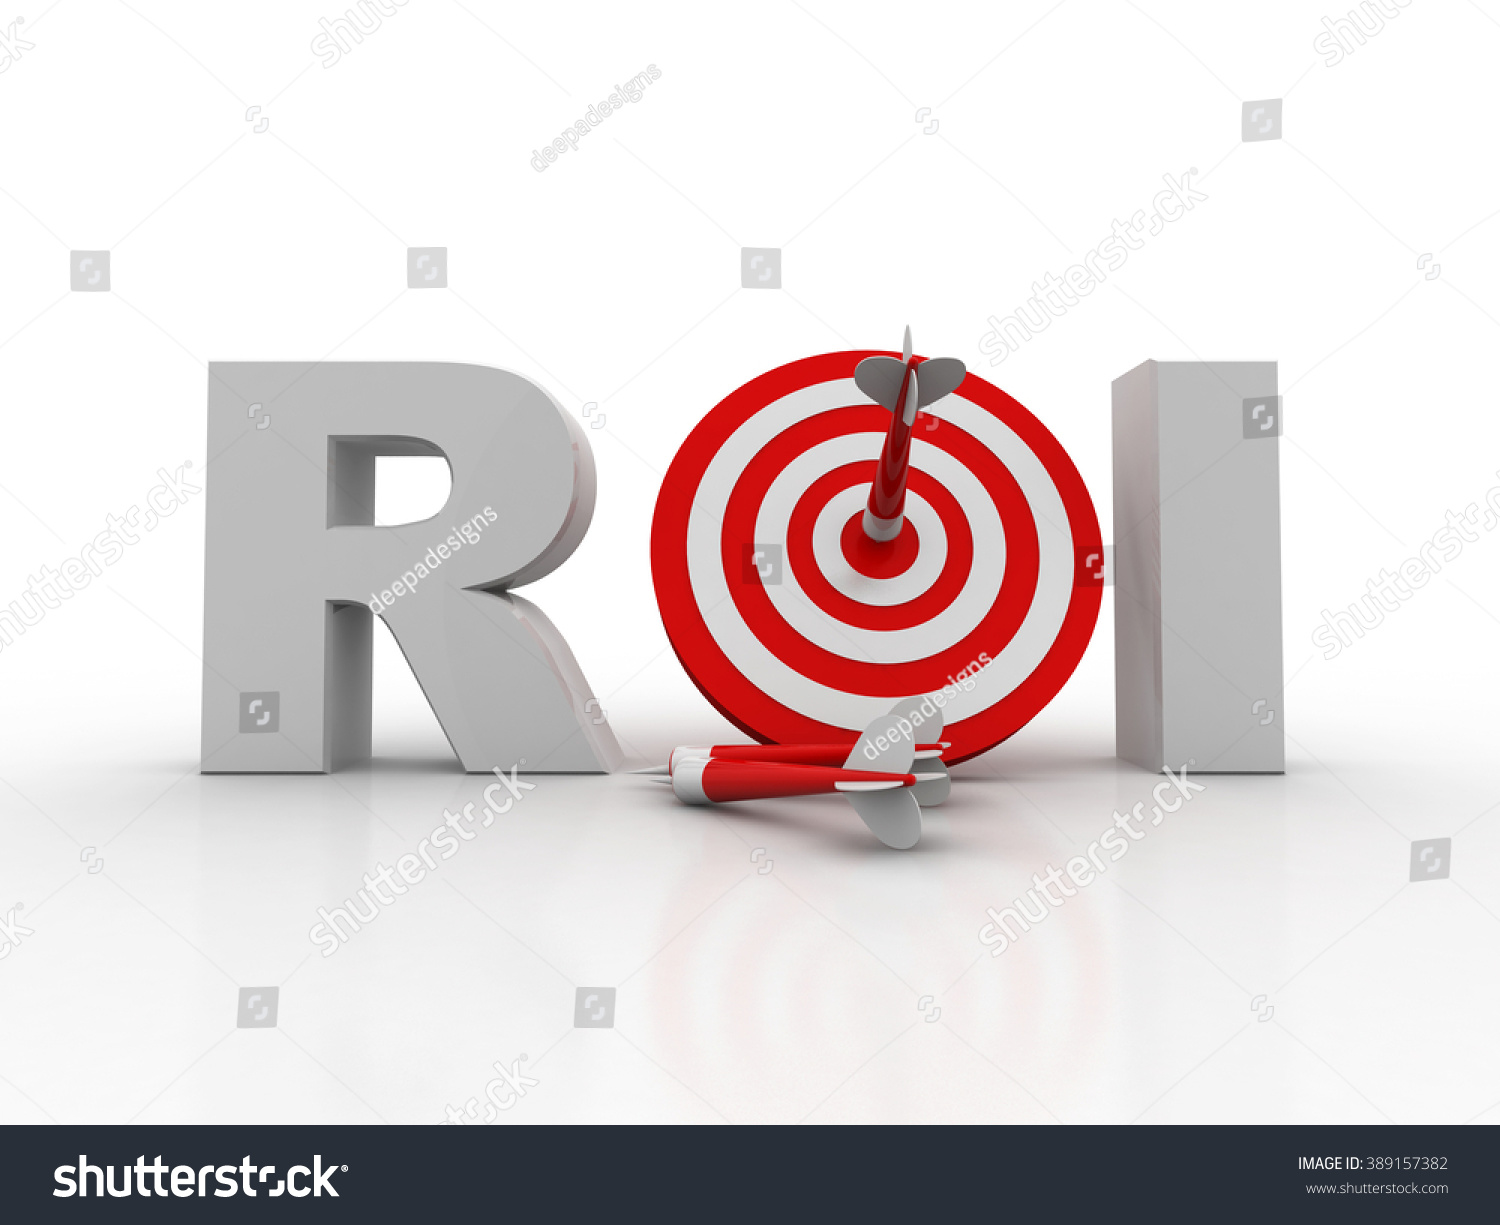 Acronym roi meaning return on investment stock illustration the acronym roi meaning return on investment with an arrow hitting a bulls eye biocorpaavc Images